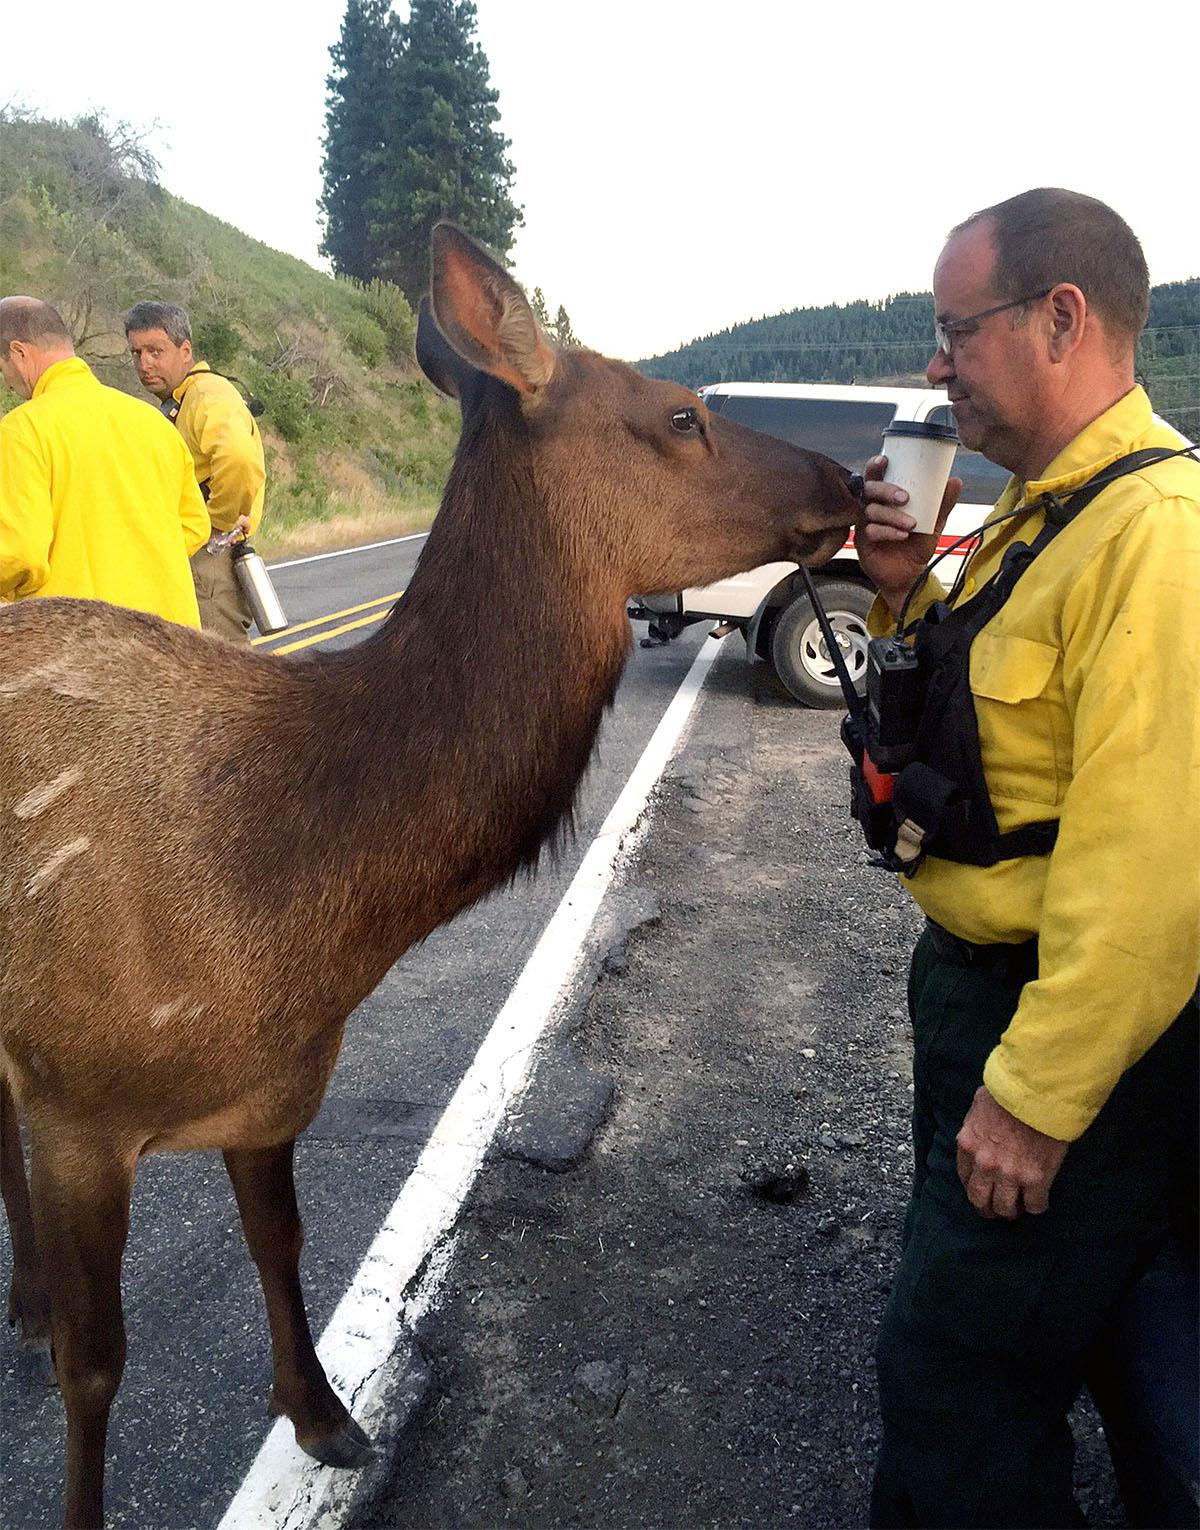 Affectionate elk nuzzles firefighters working to tame wildfire near Cle Elum